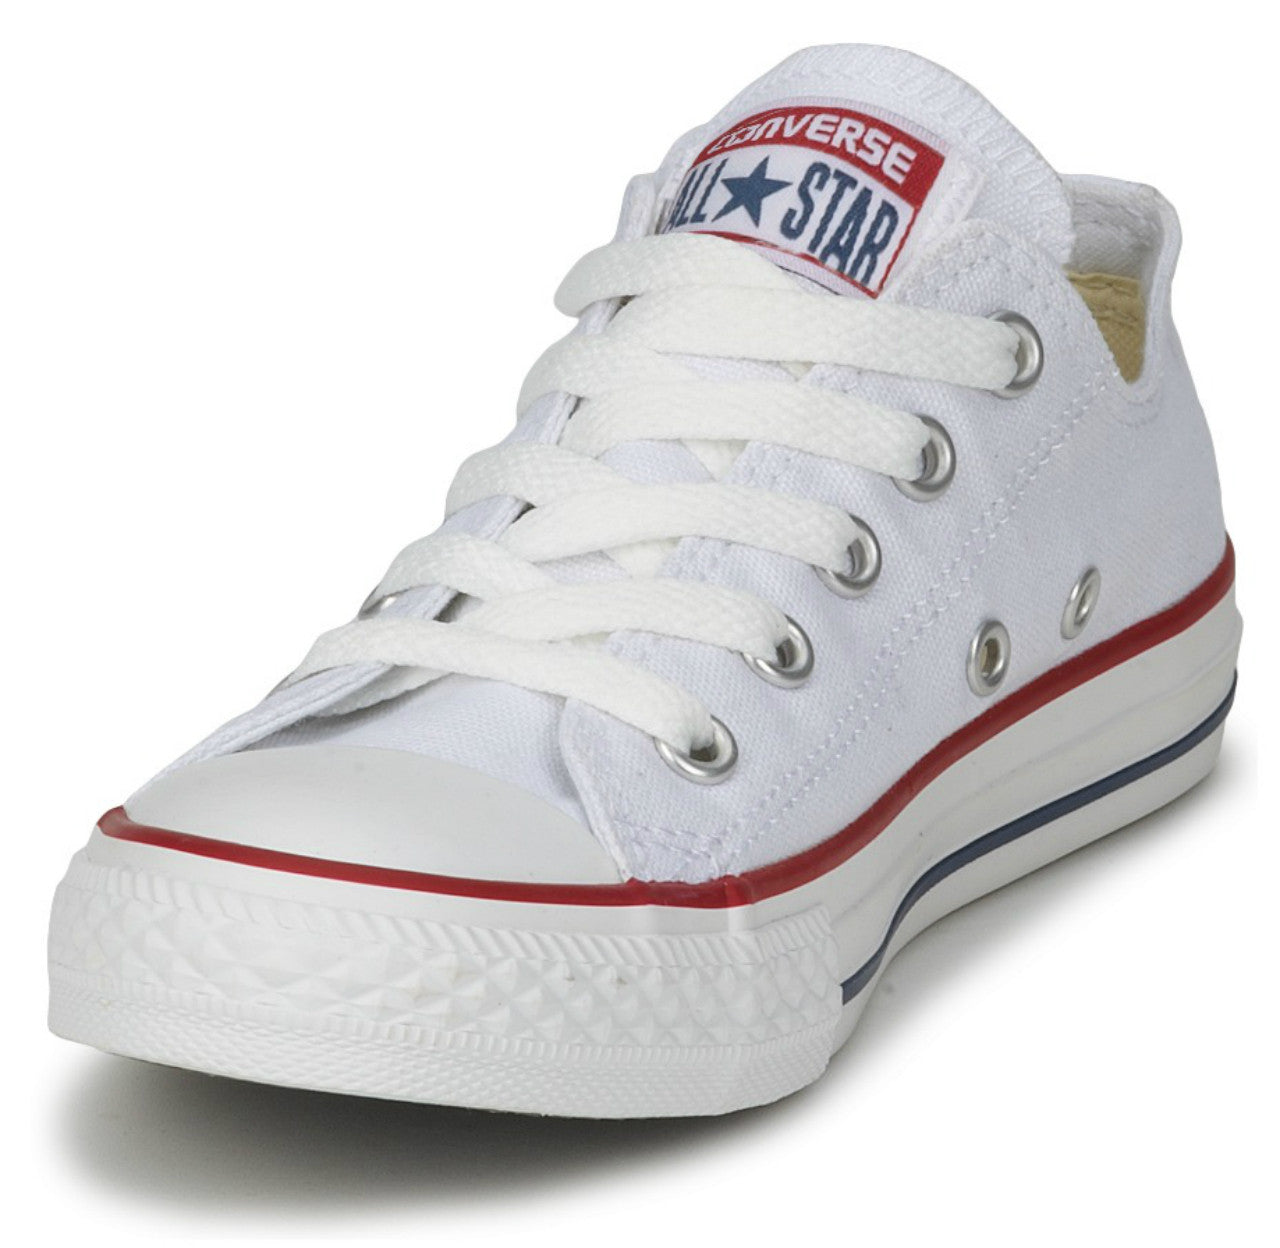 ... Converse Classic Chuck Taylor White Low Tops Trainer Sneaker All Star  OX NEW sizes Shoes ... 378d9d51a